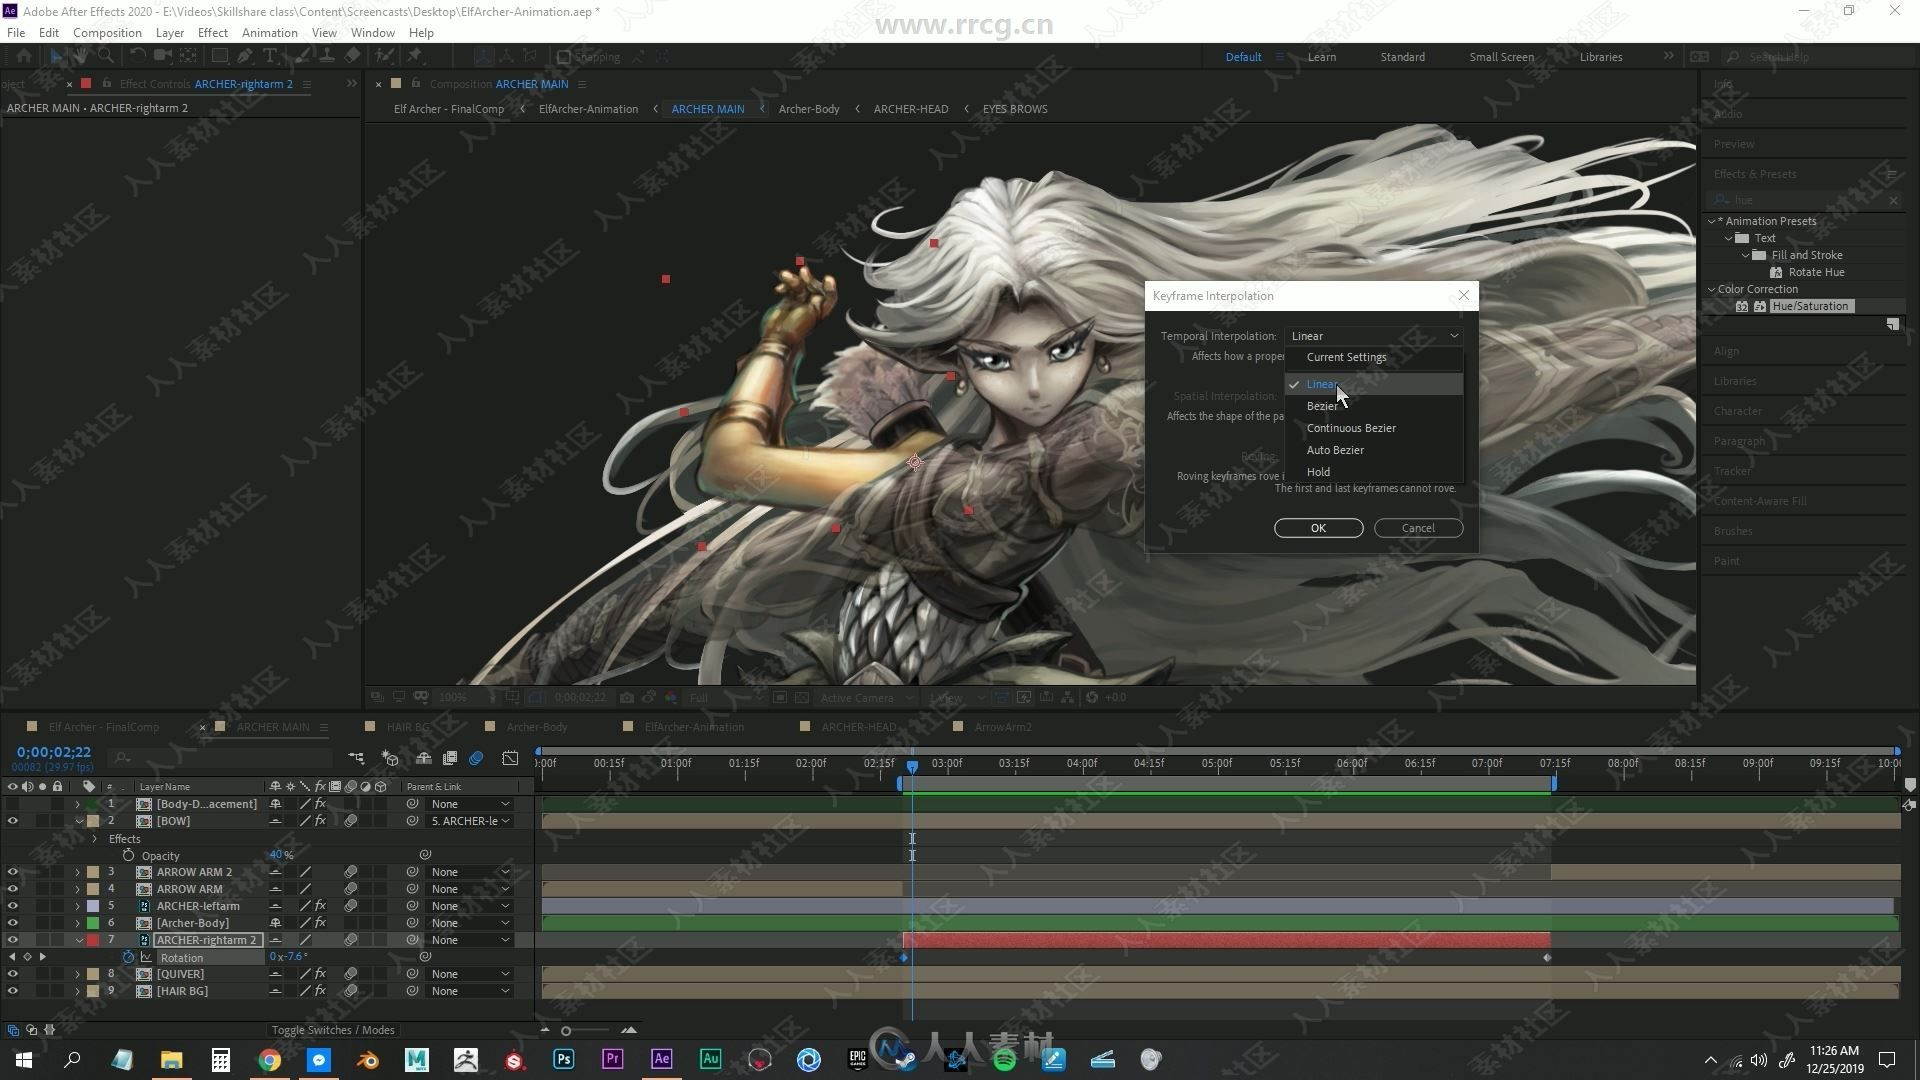 375675-03 - After Effects UI & Workflow - Animating a 2D Image with After Effe.jpg